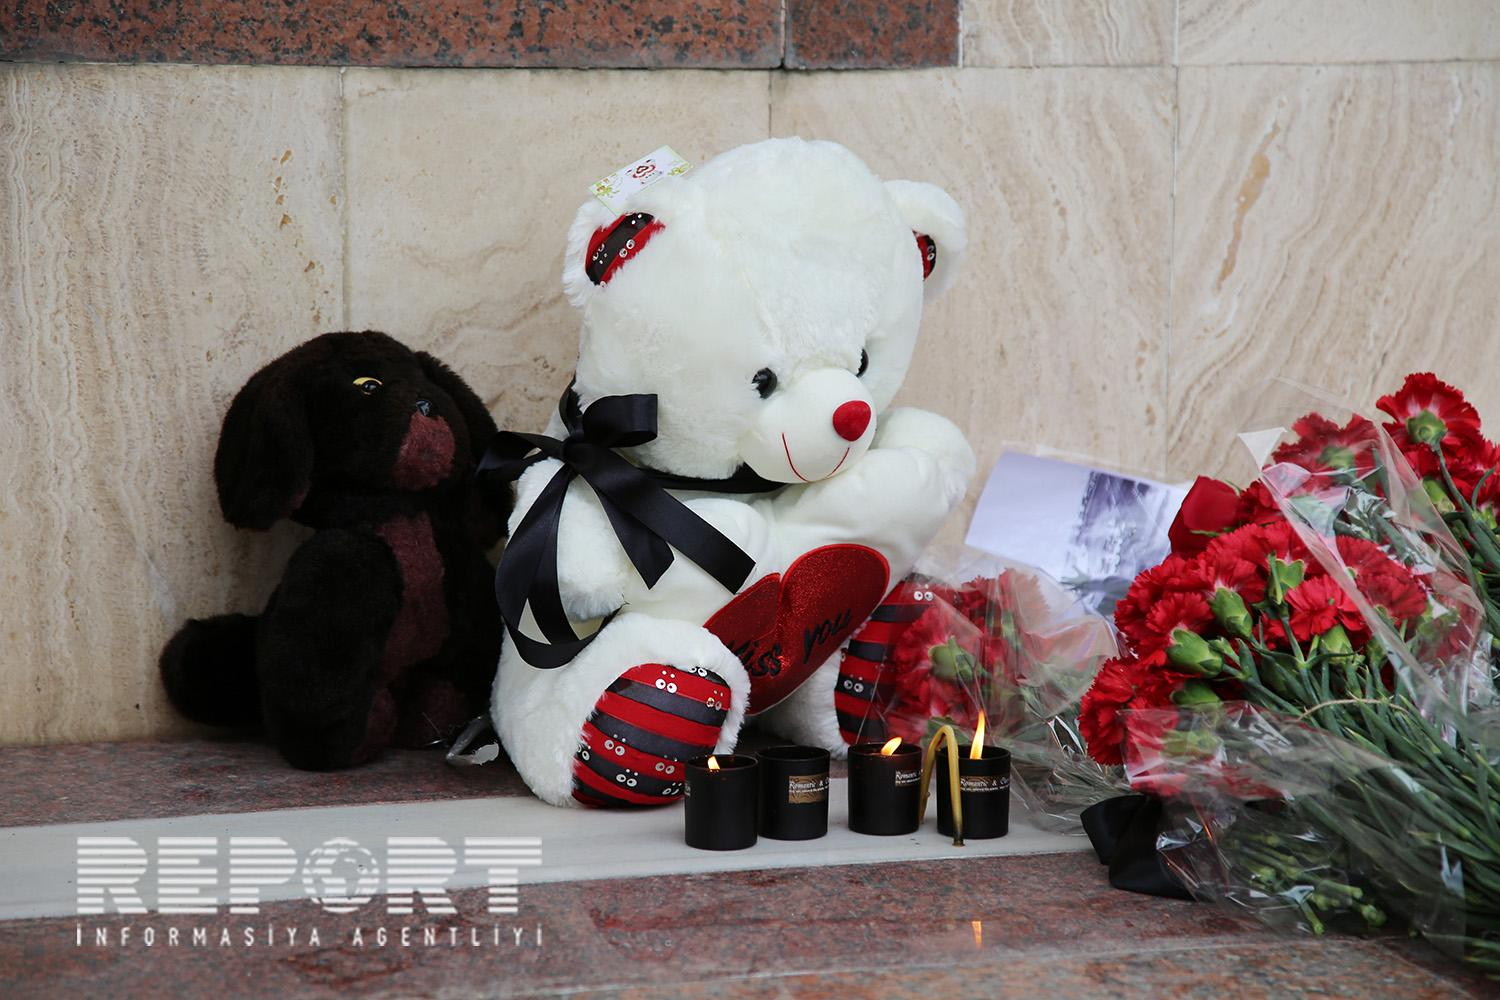 Baku residents bring flowers to Russian embassy - PHOTOS